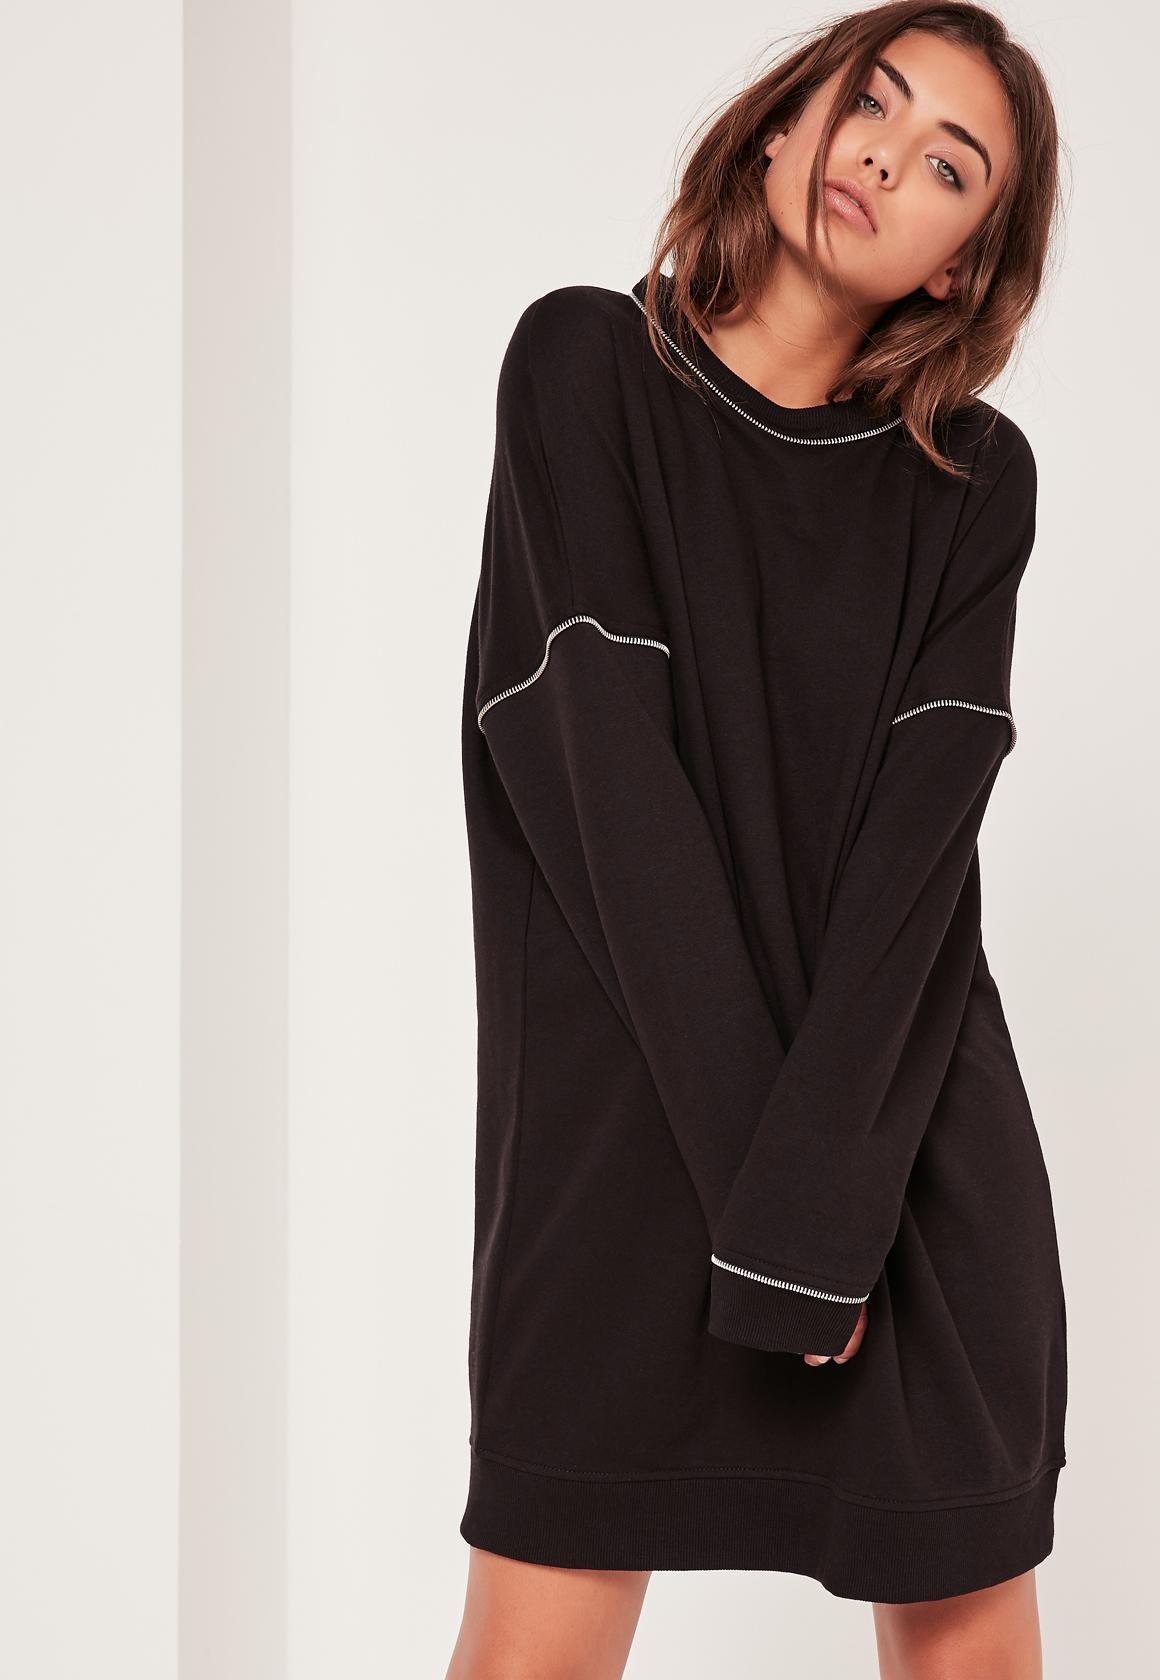 Missguided Zip Detail Jumper Dress Black In Black | Lyst